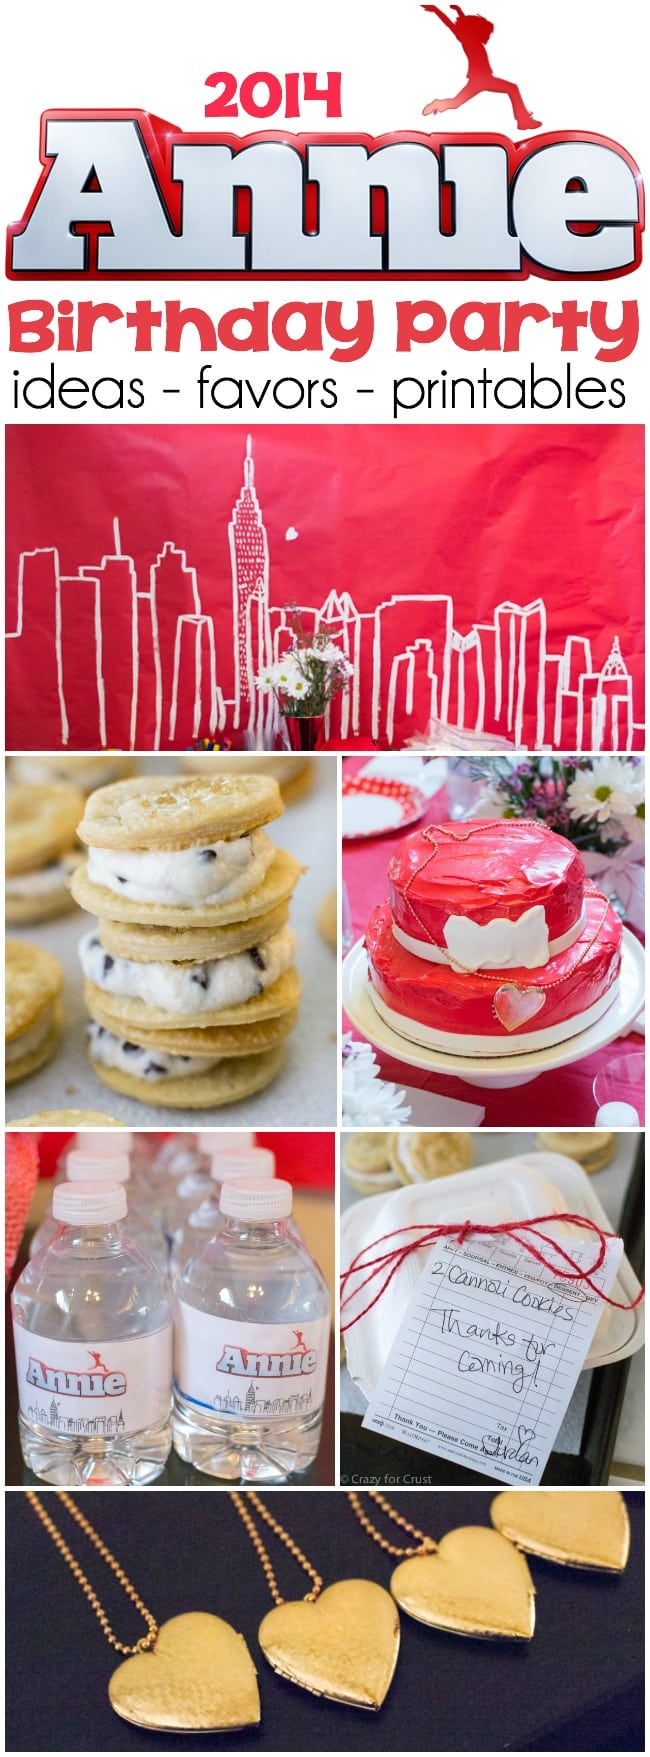 2014 Annie Birthday Party ideas and printables